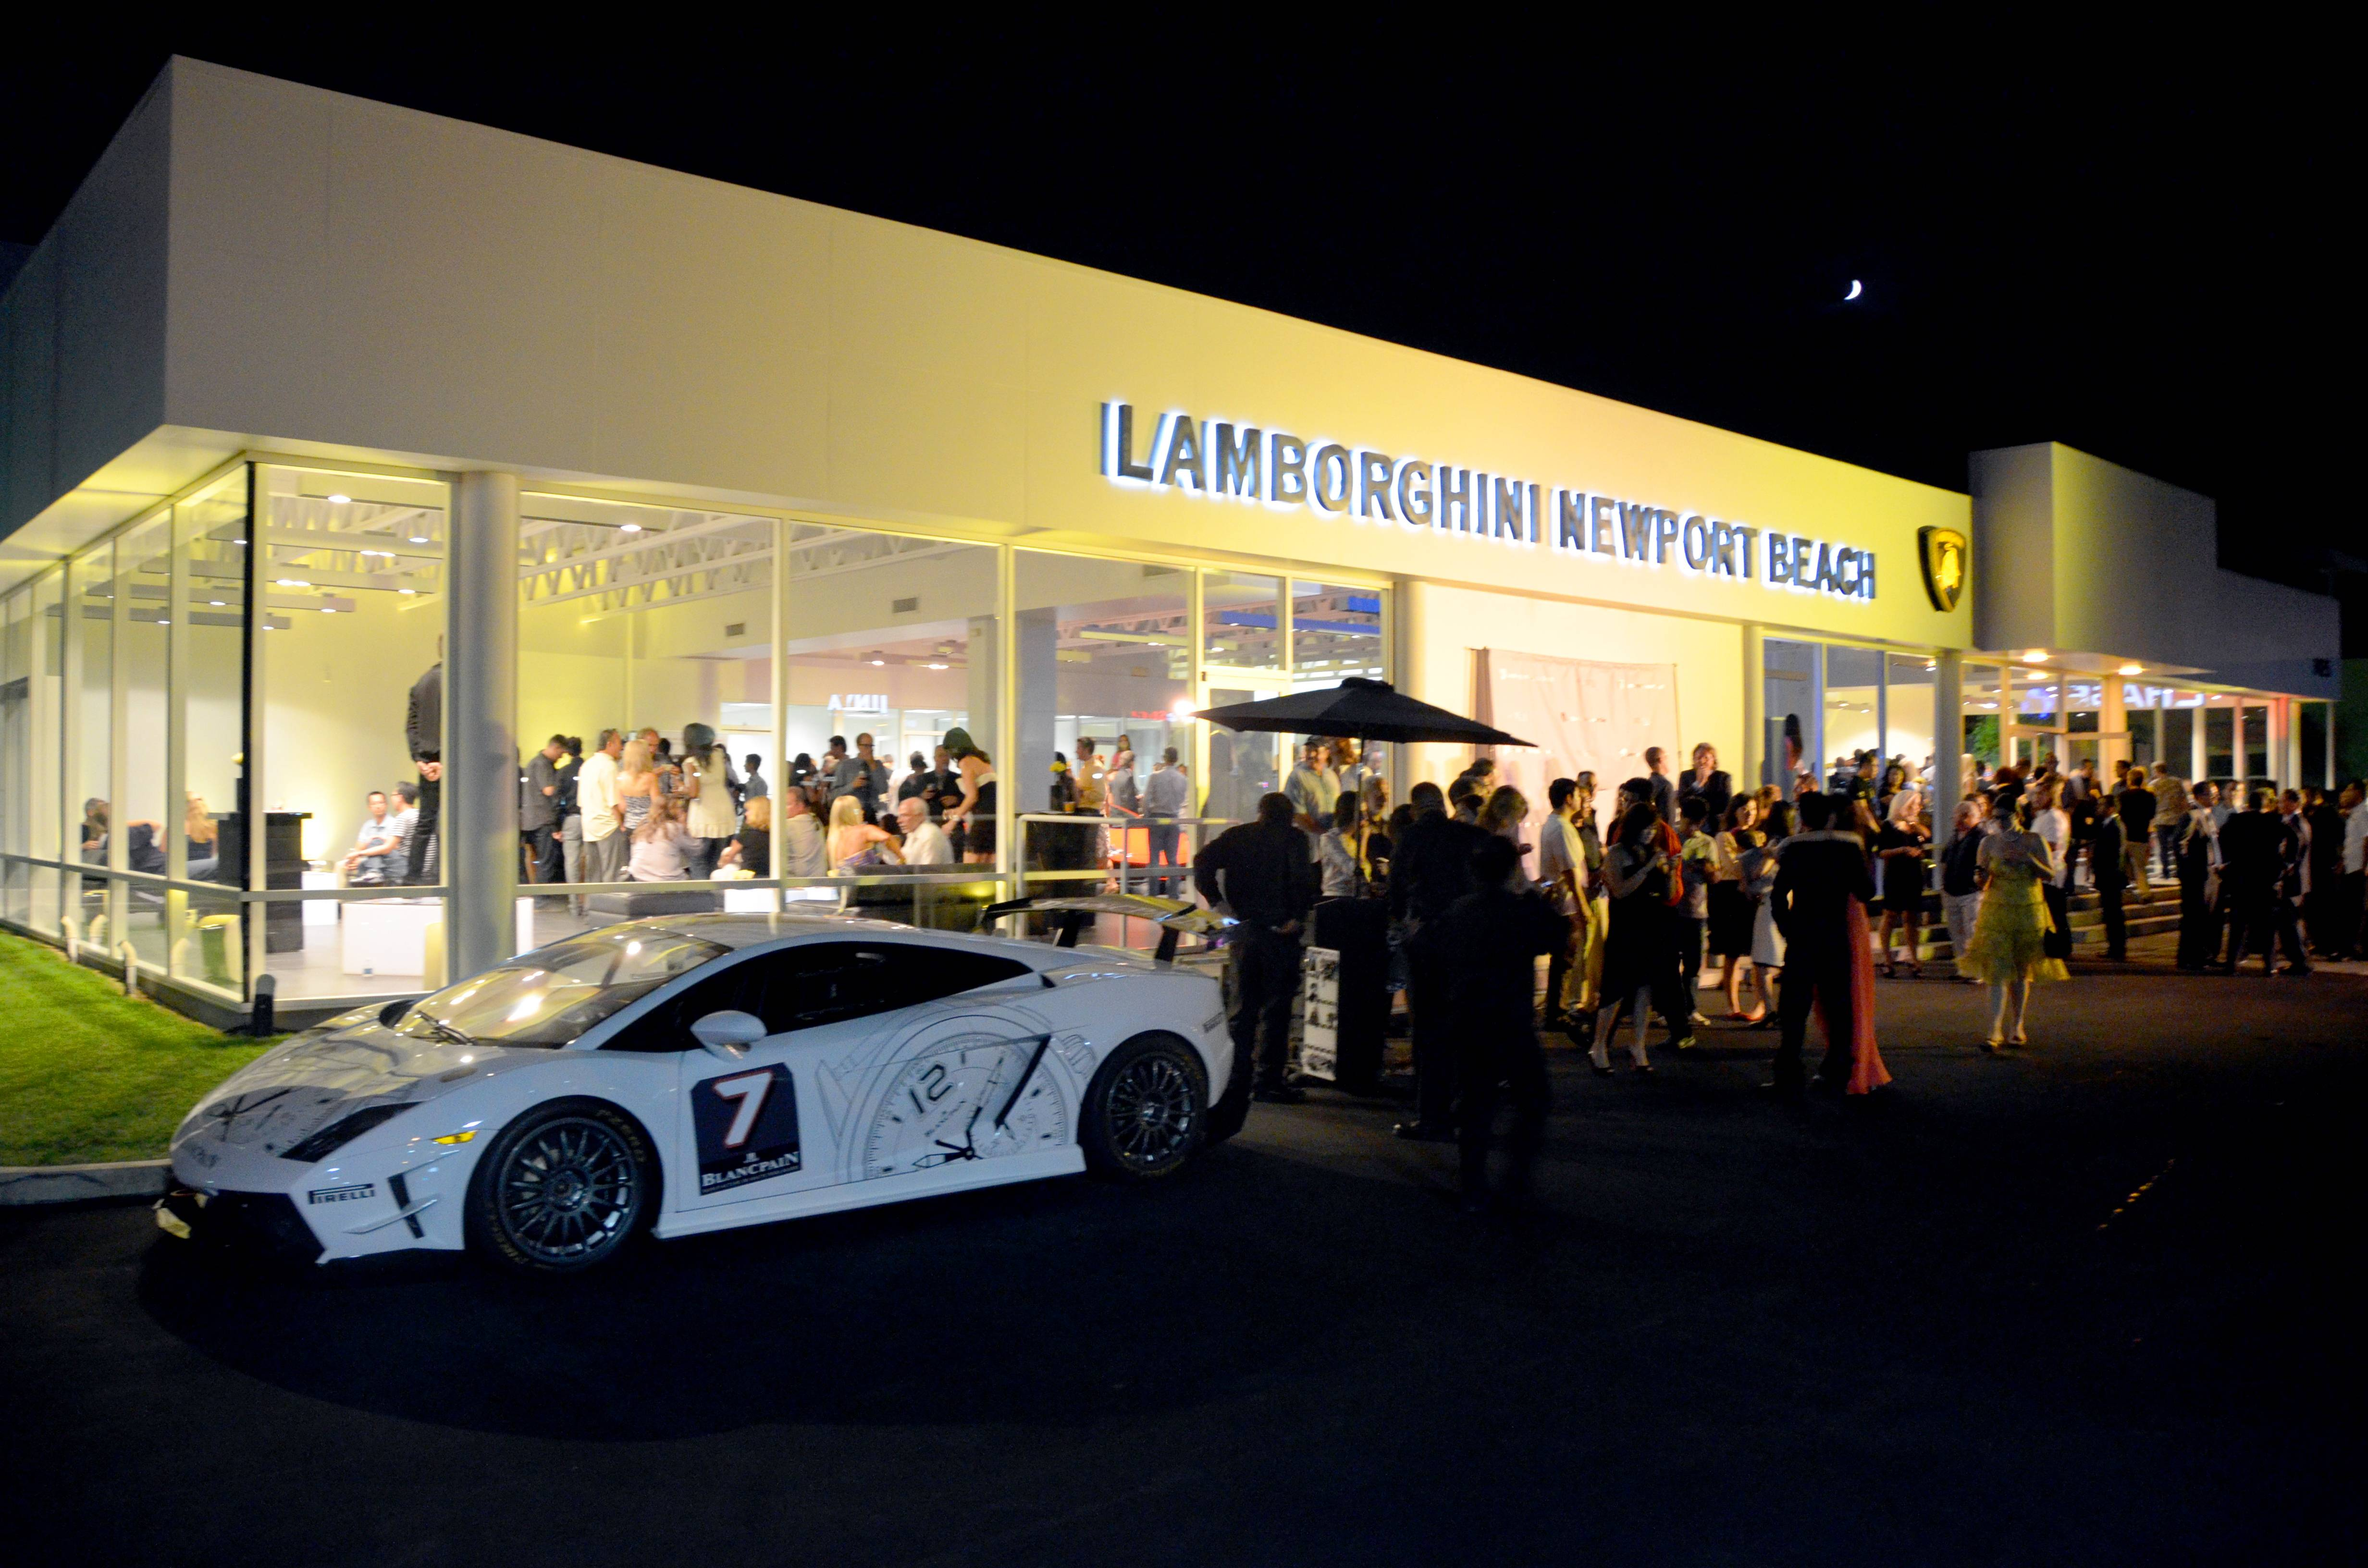 Lamborghini Newport Beach - Dealership and Lamborghini Gallardo Super Trofeo (left)